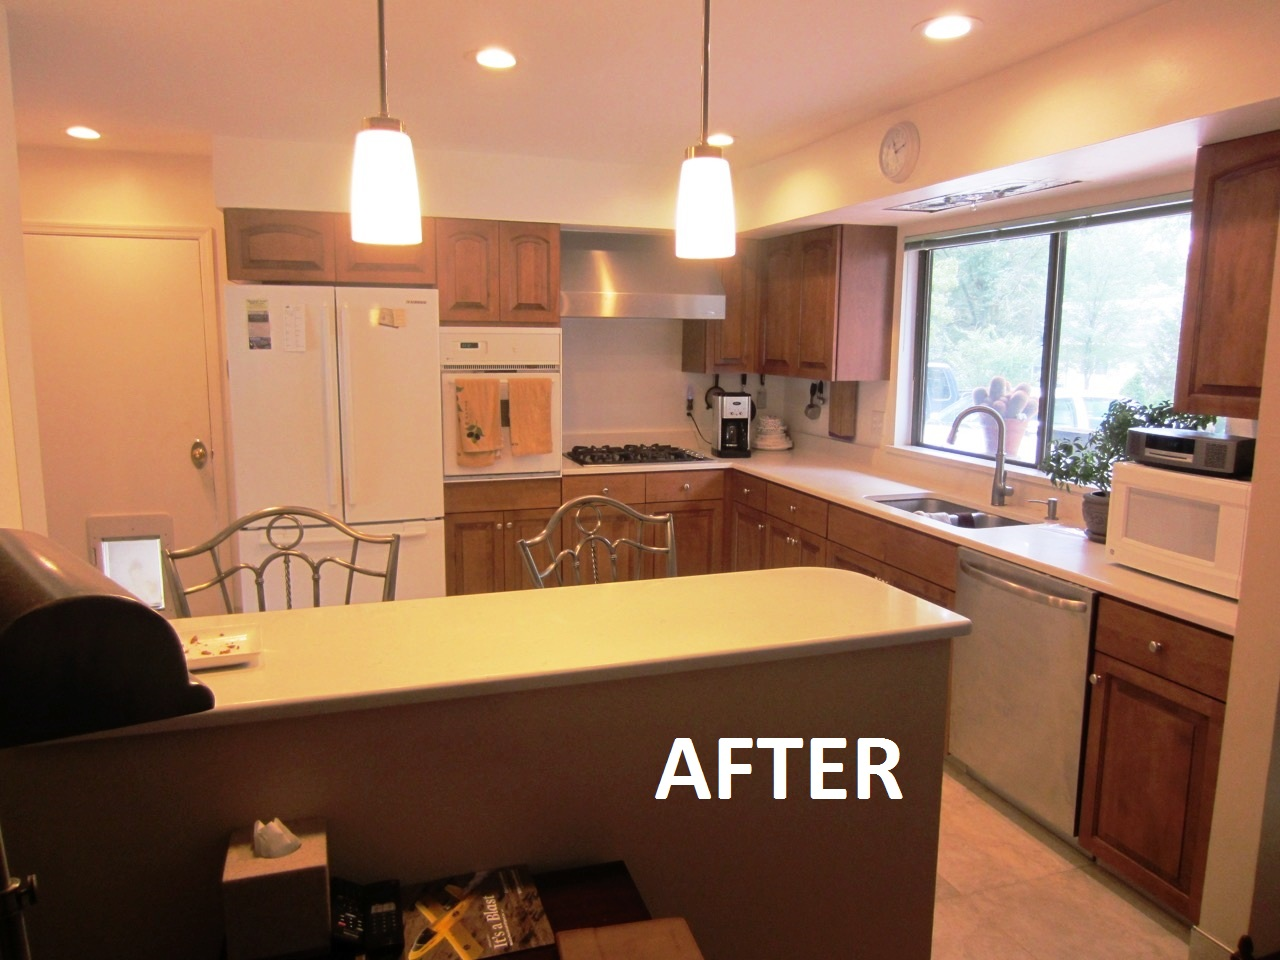 Refaced Kitchen Cabinets in Lake St. Louis, MO